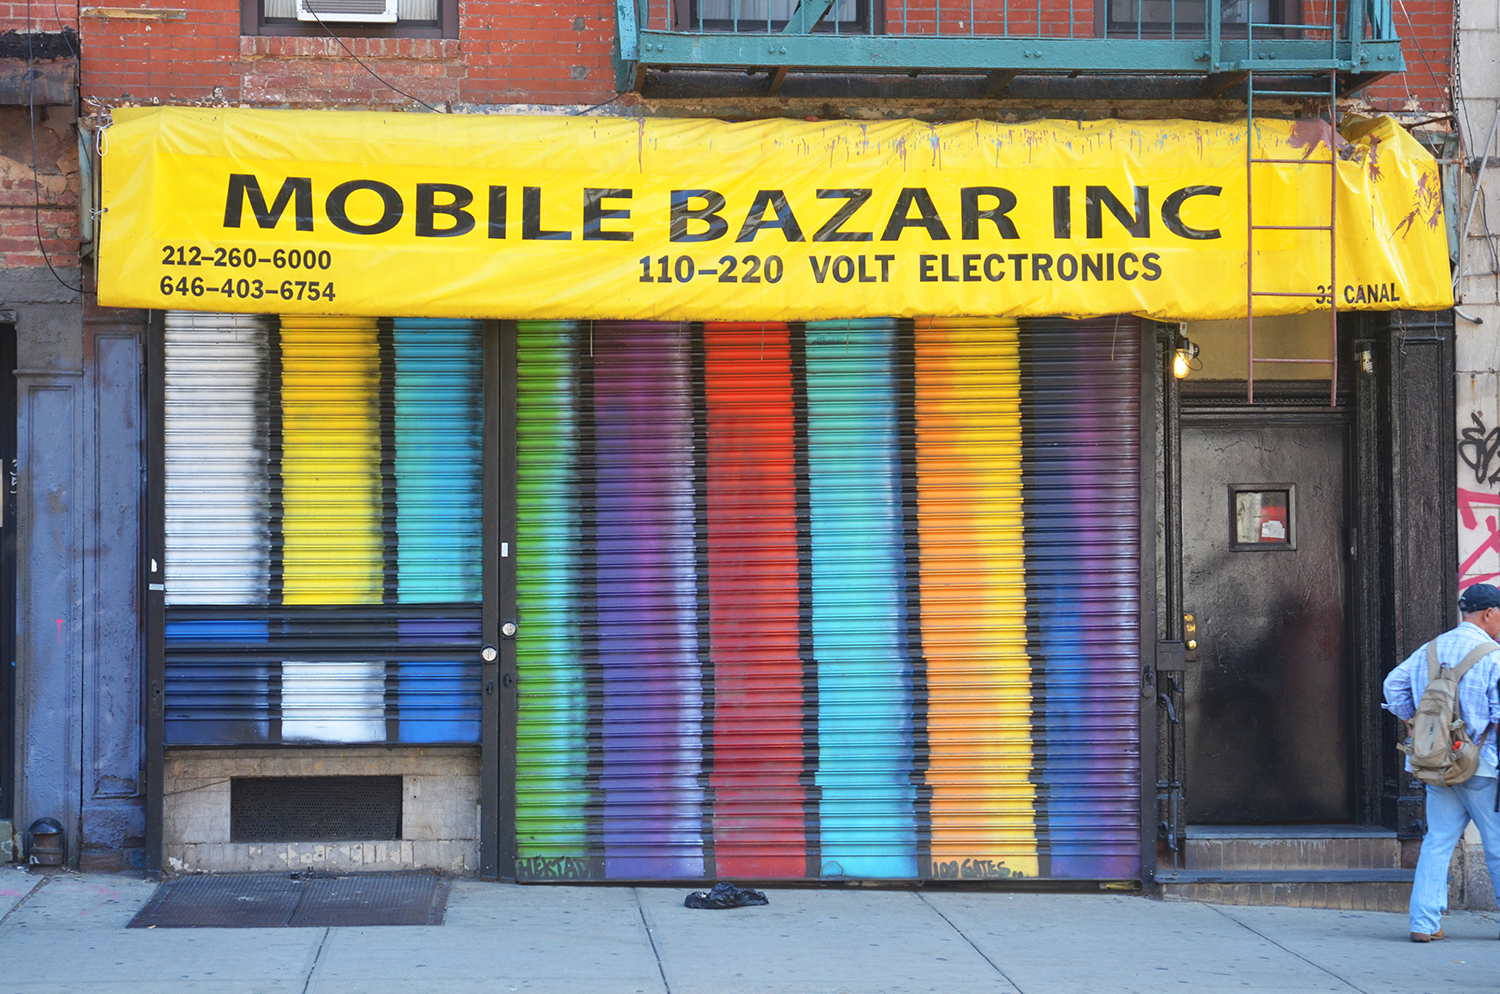 100 Gates - Mobile Bazar at 33 Canal Street by Hektad